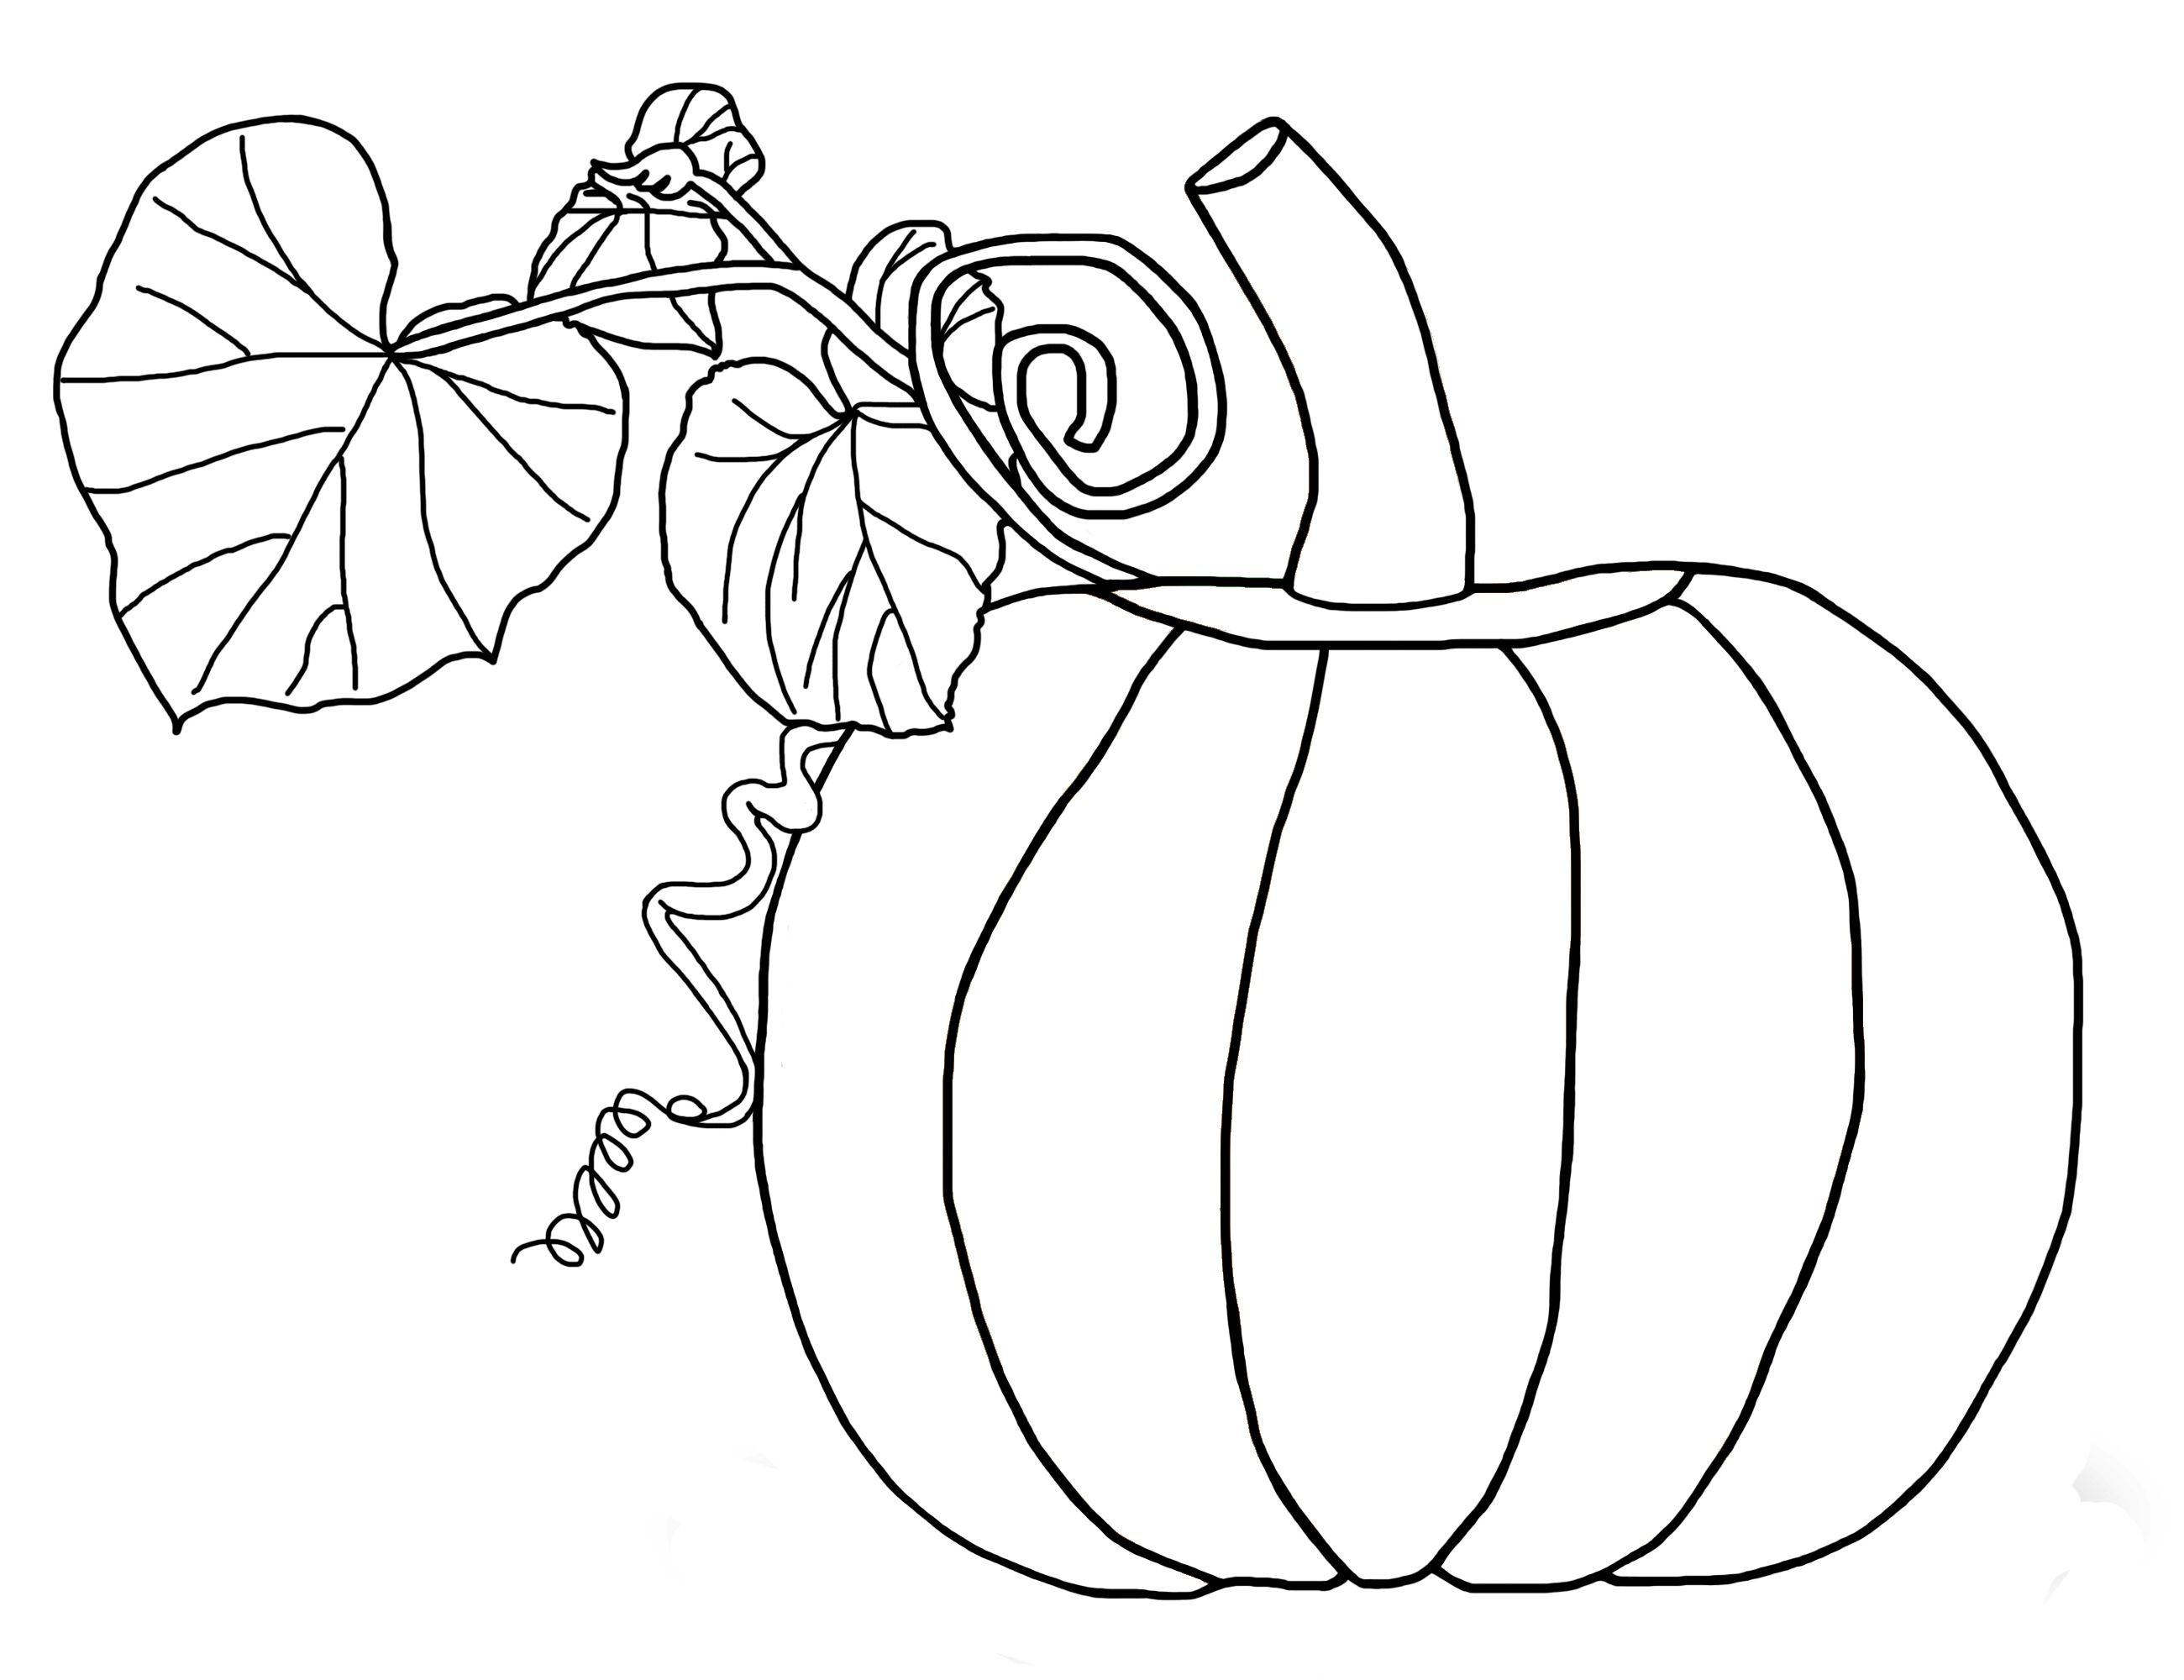 The Pumpkin And Leaves Coloring Pages | fall♡♡♡ | Pinterest